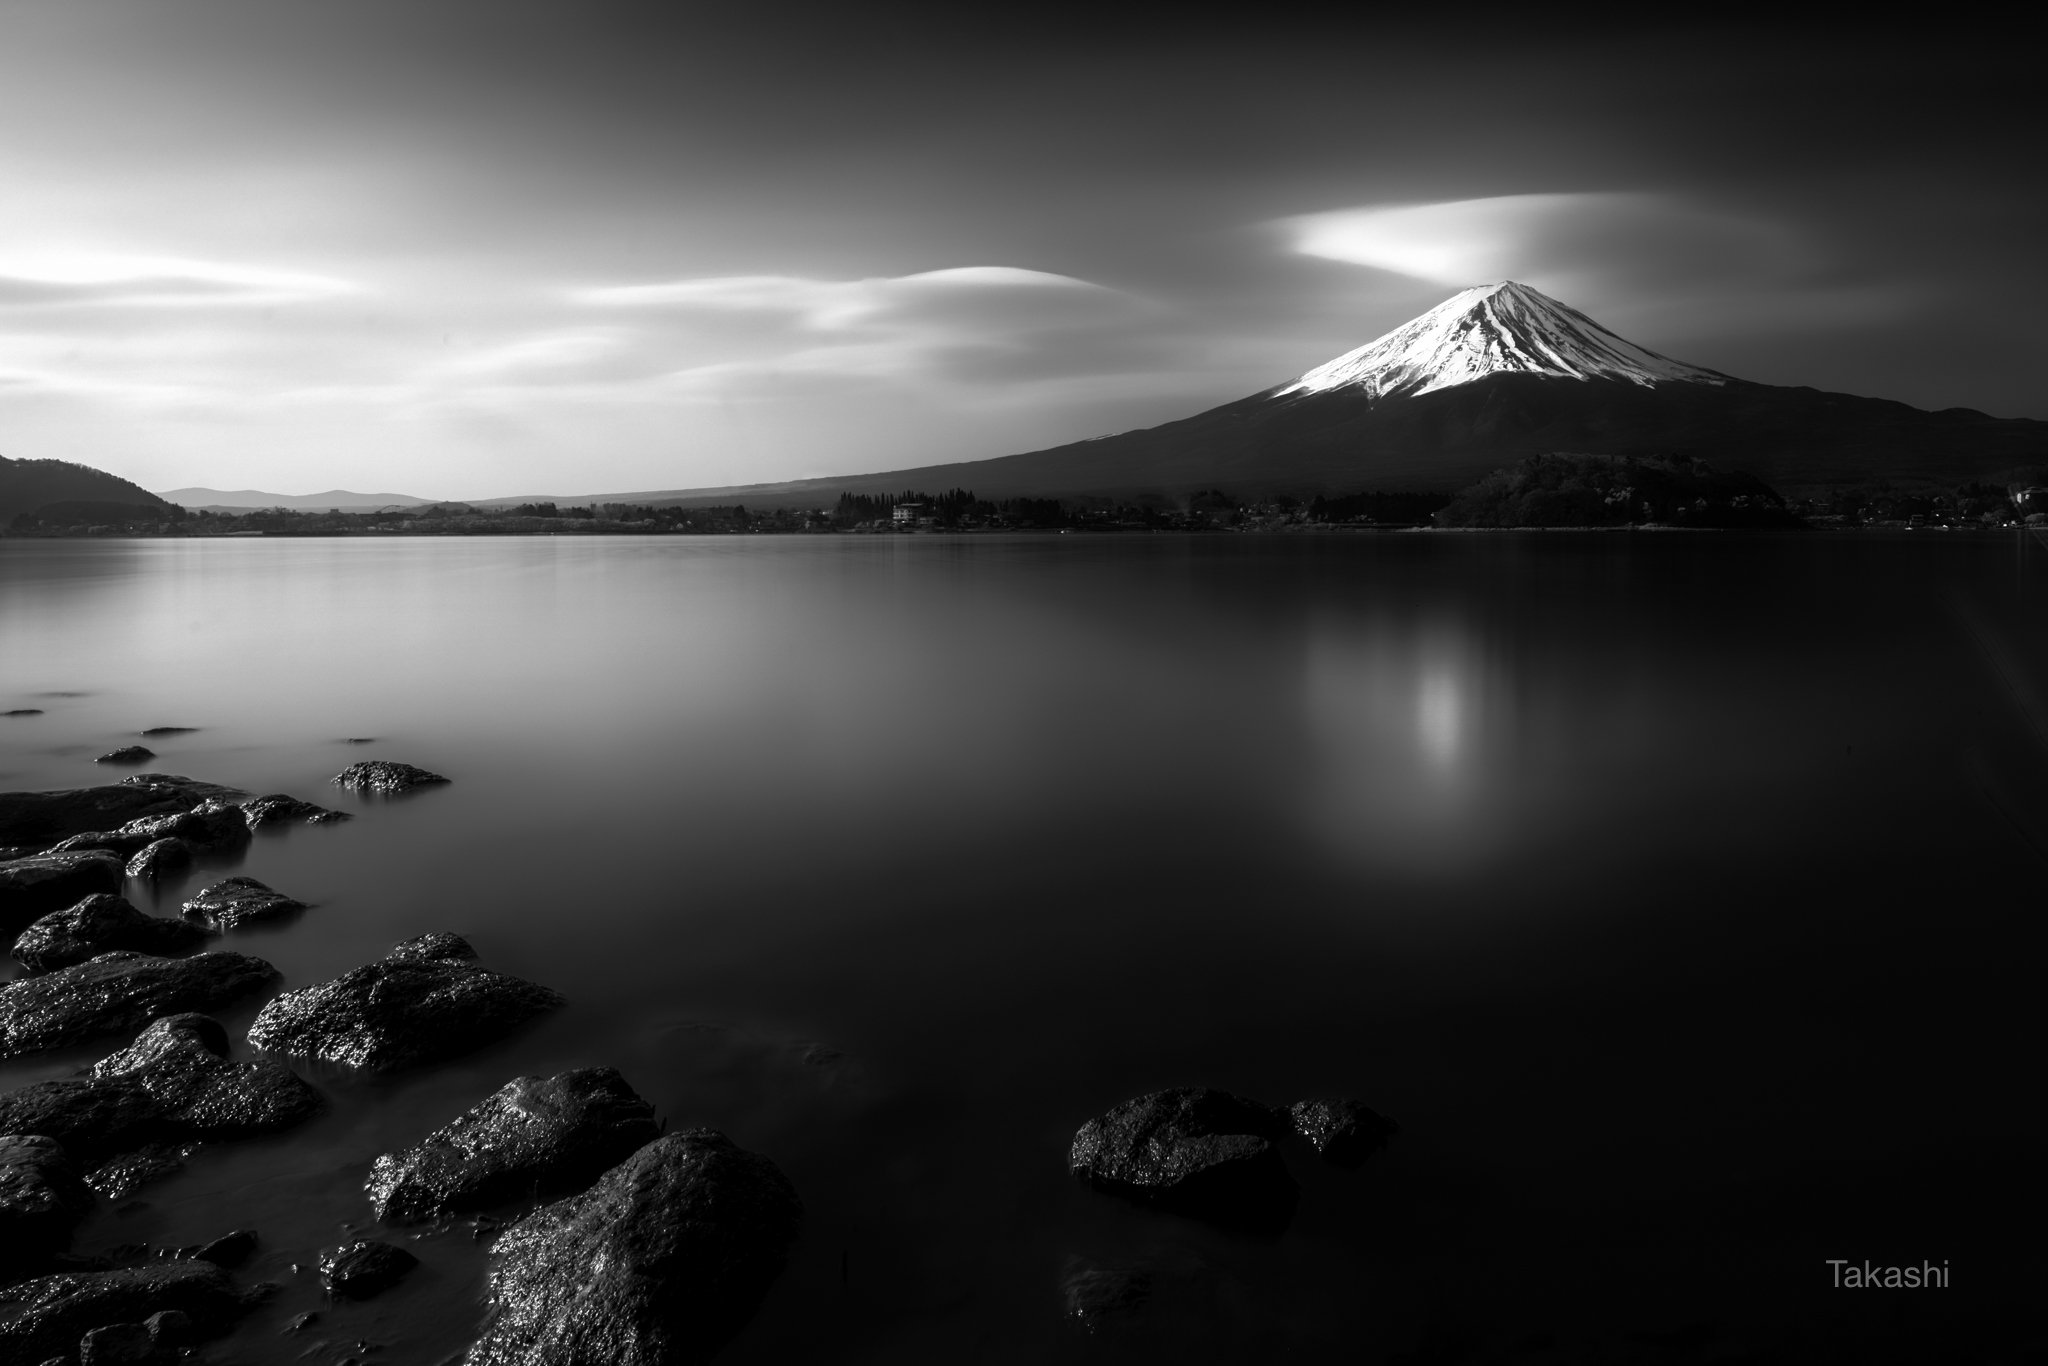 fuji, mountain,cloud,lake,water,rock,calm,amazing,, Takashi